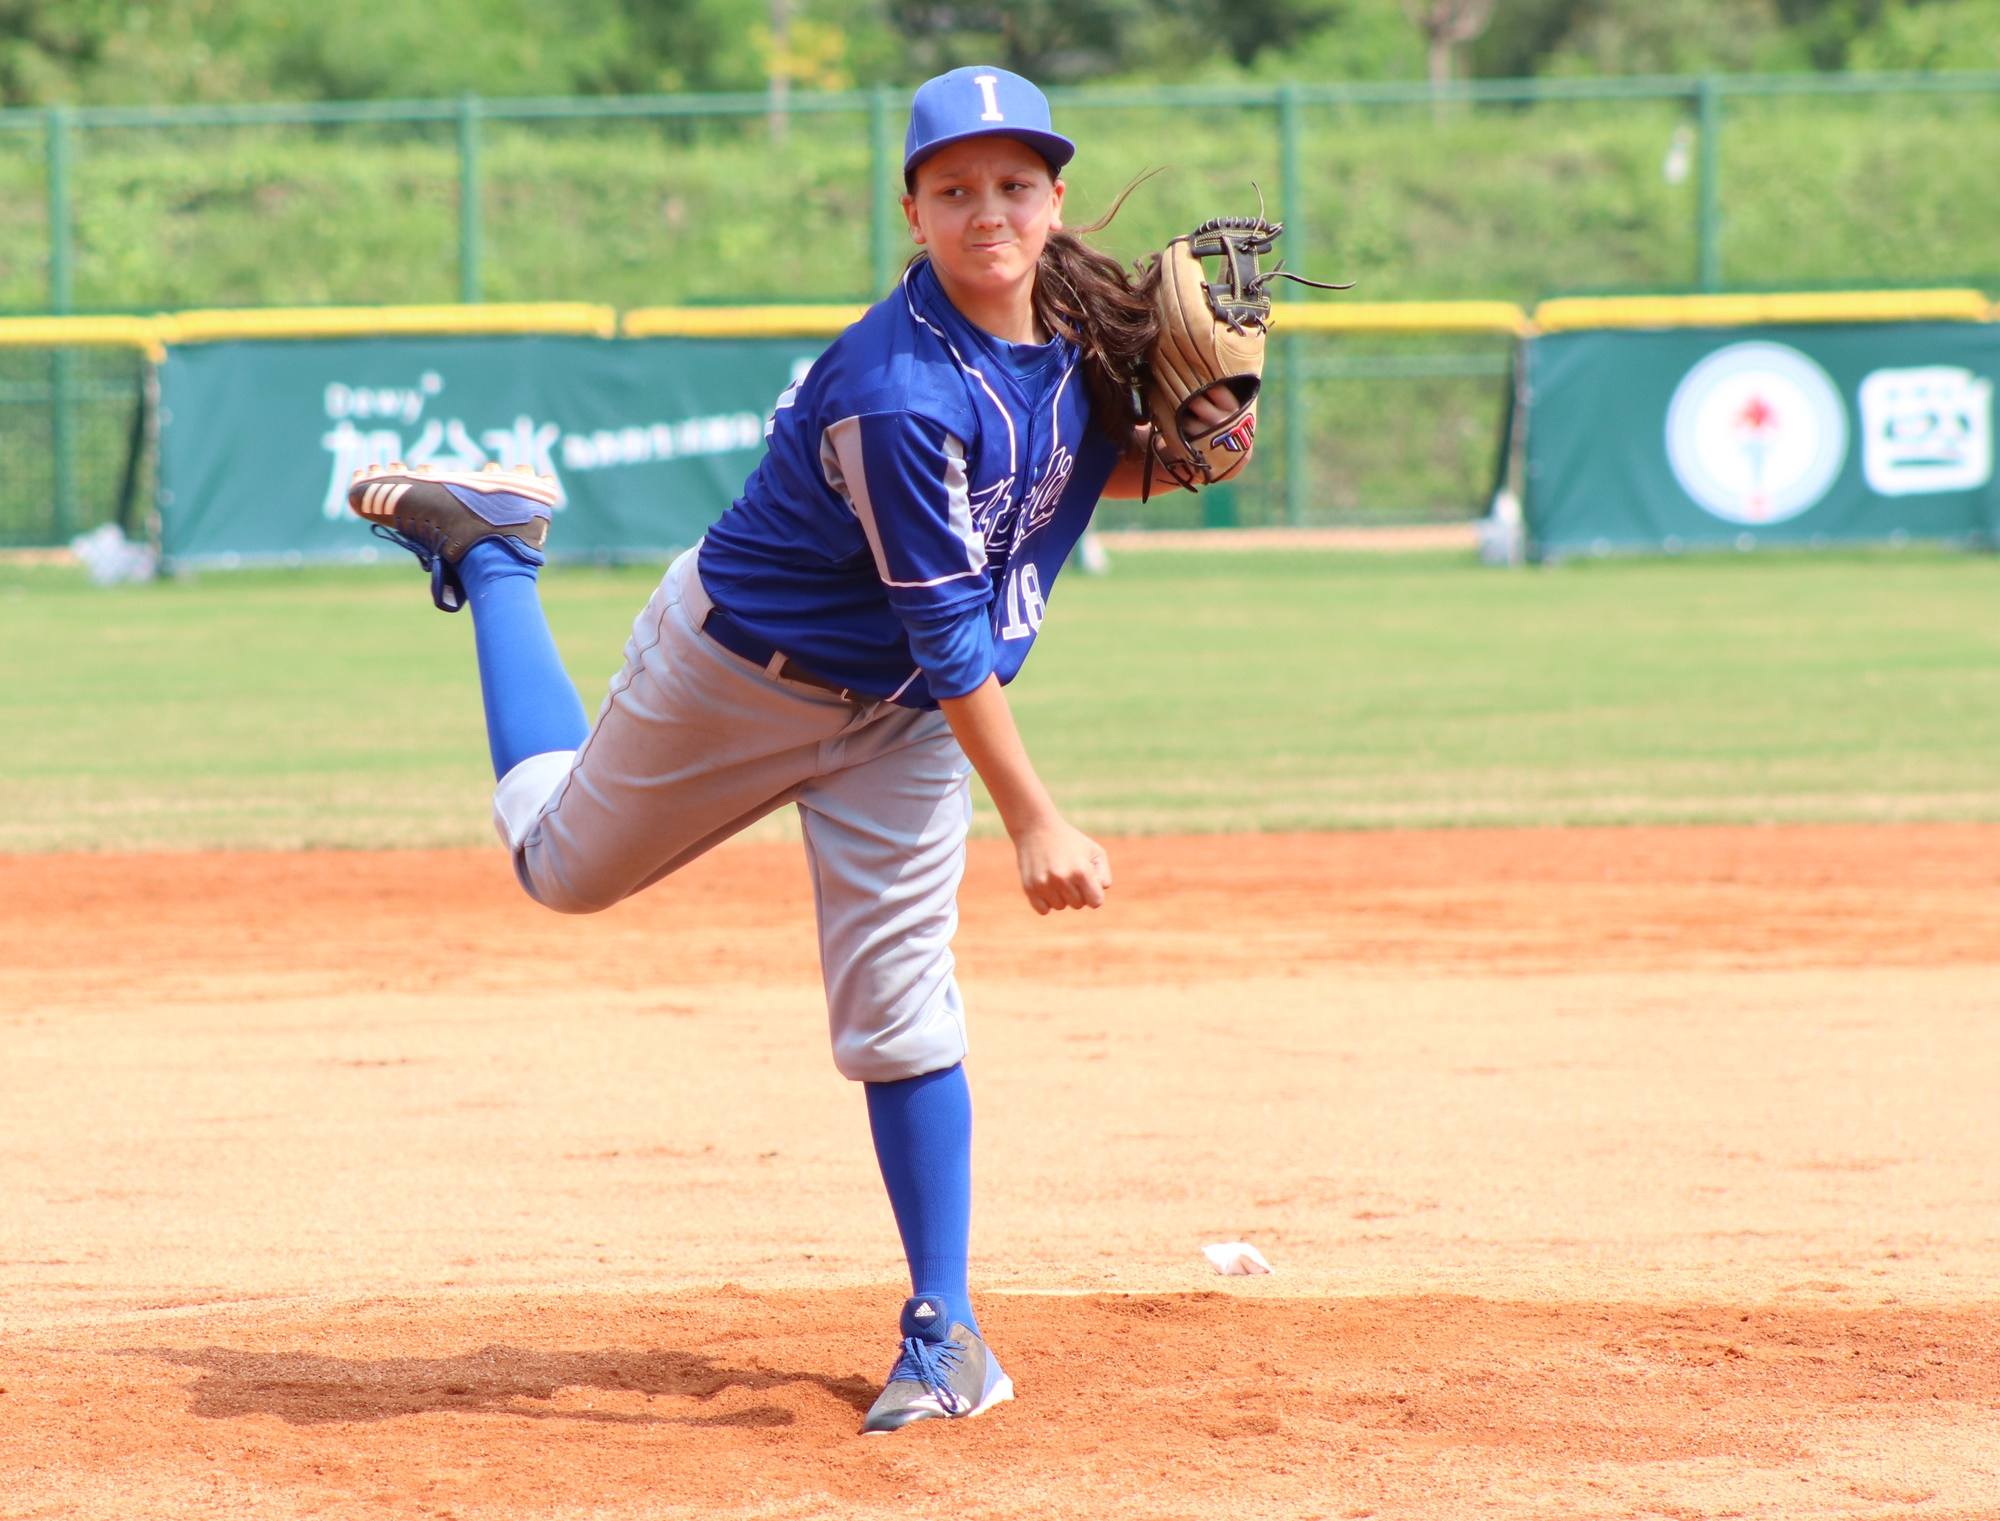 Naomi Cortesi one one of the pitchers the Italians used